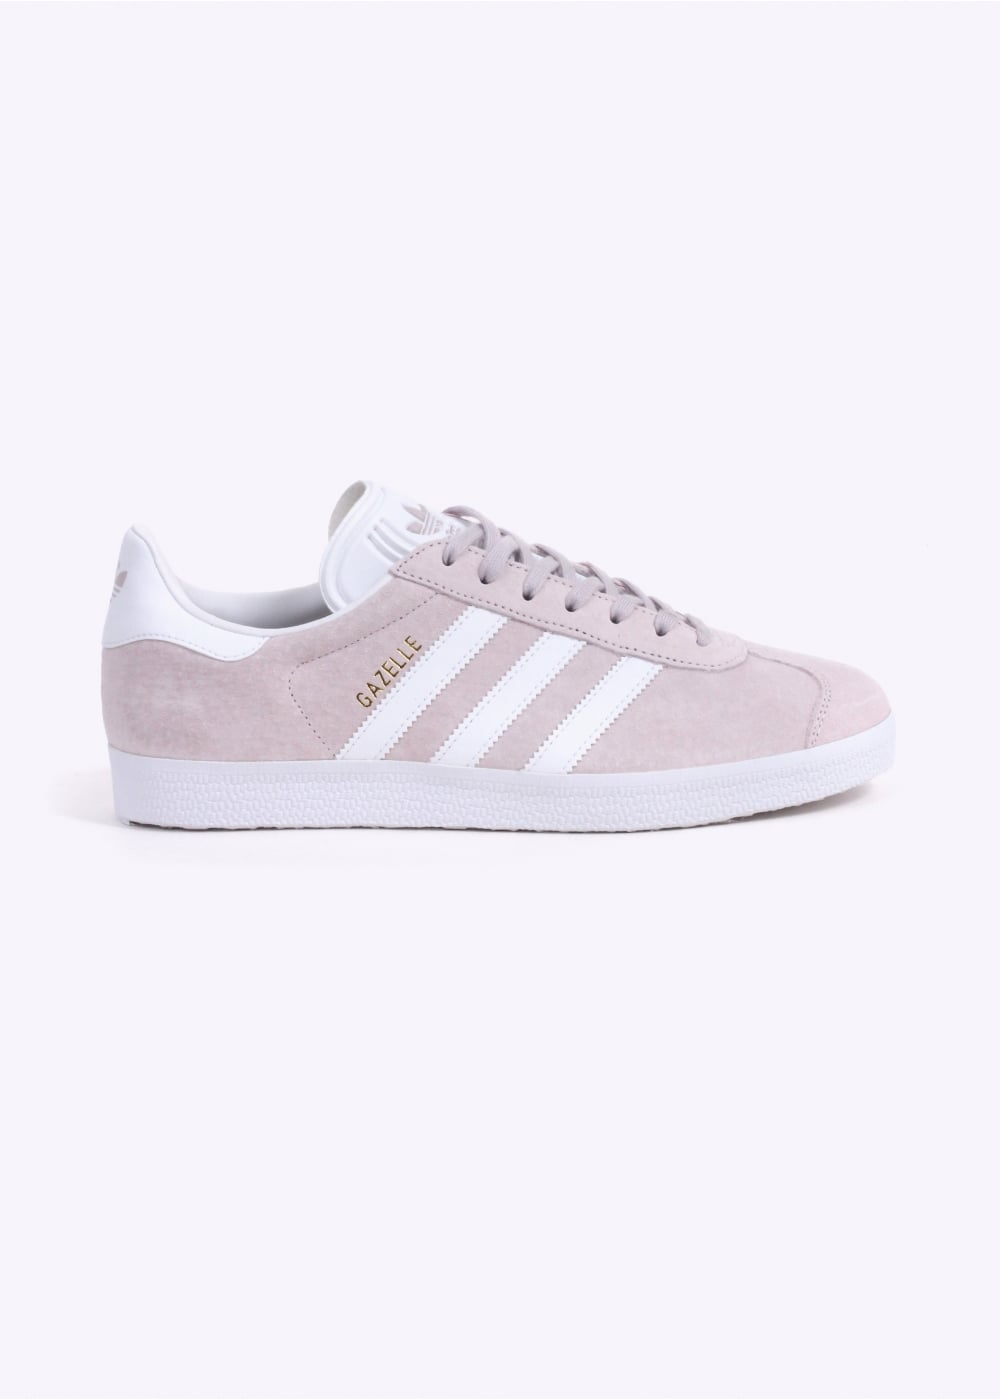 adidas gazelle ice purple